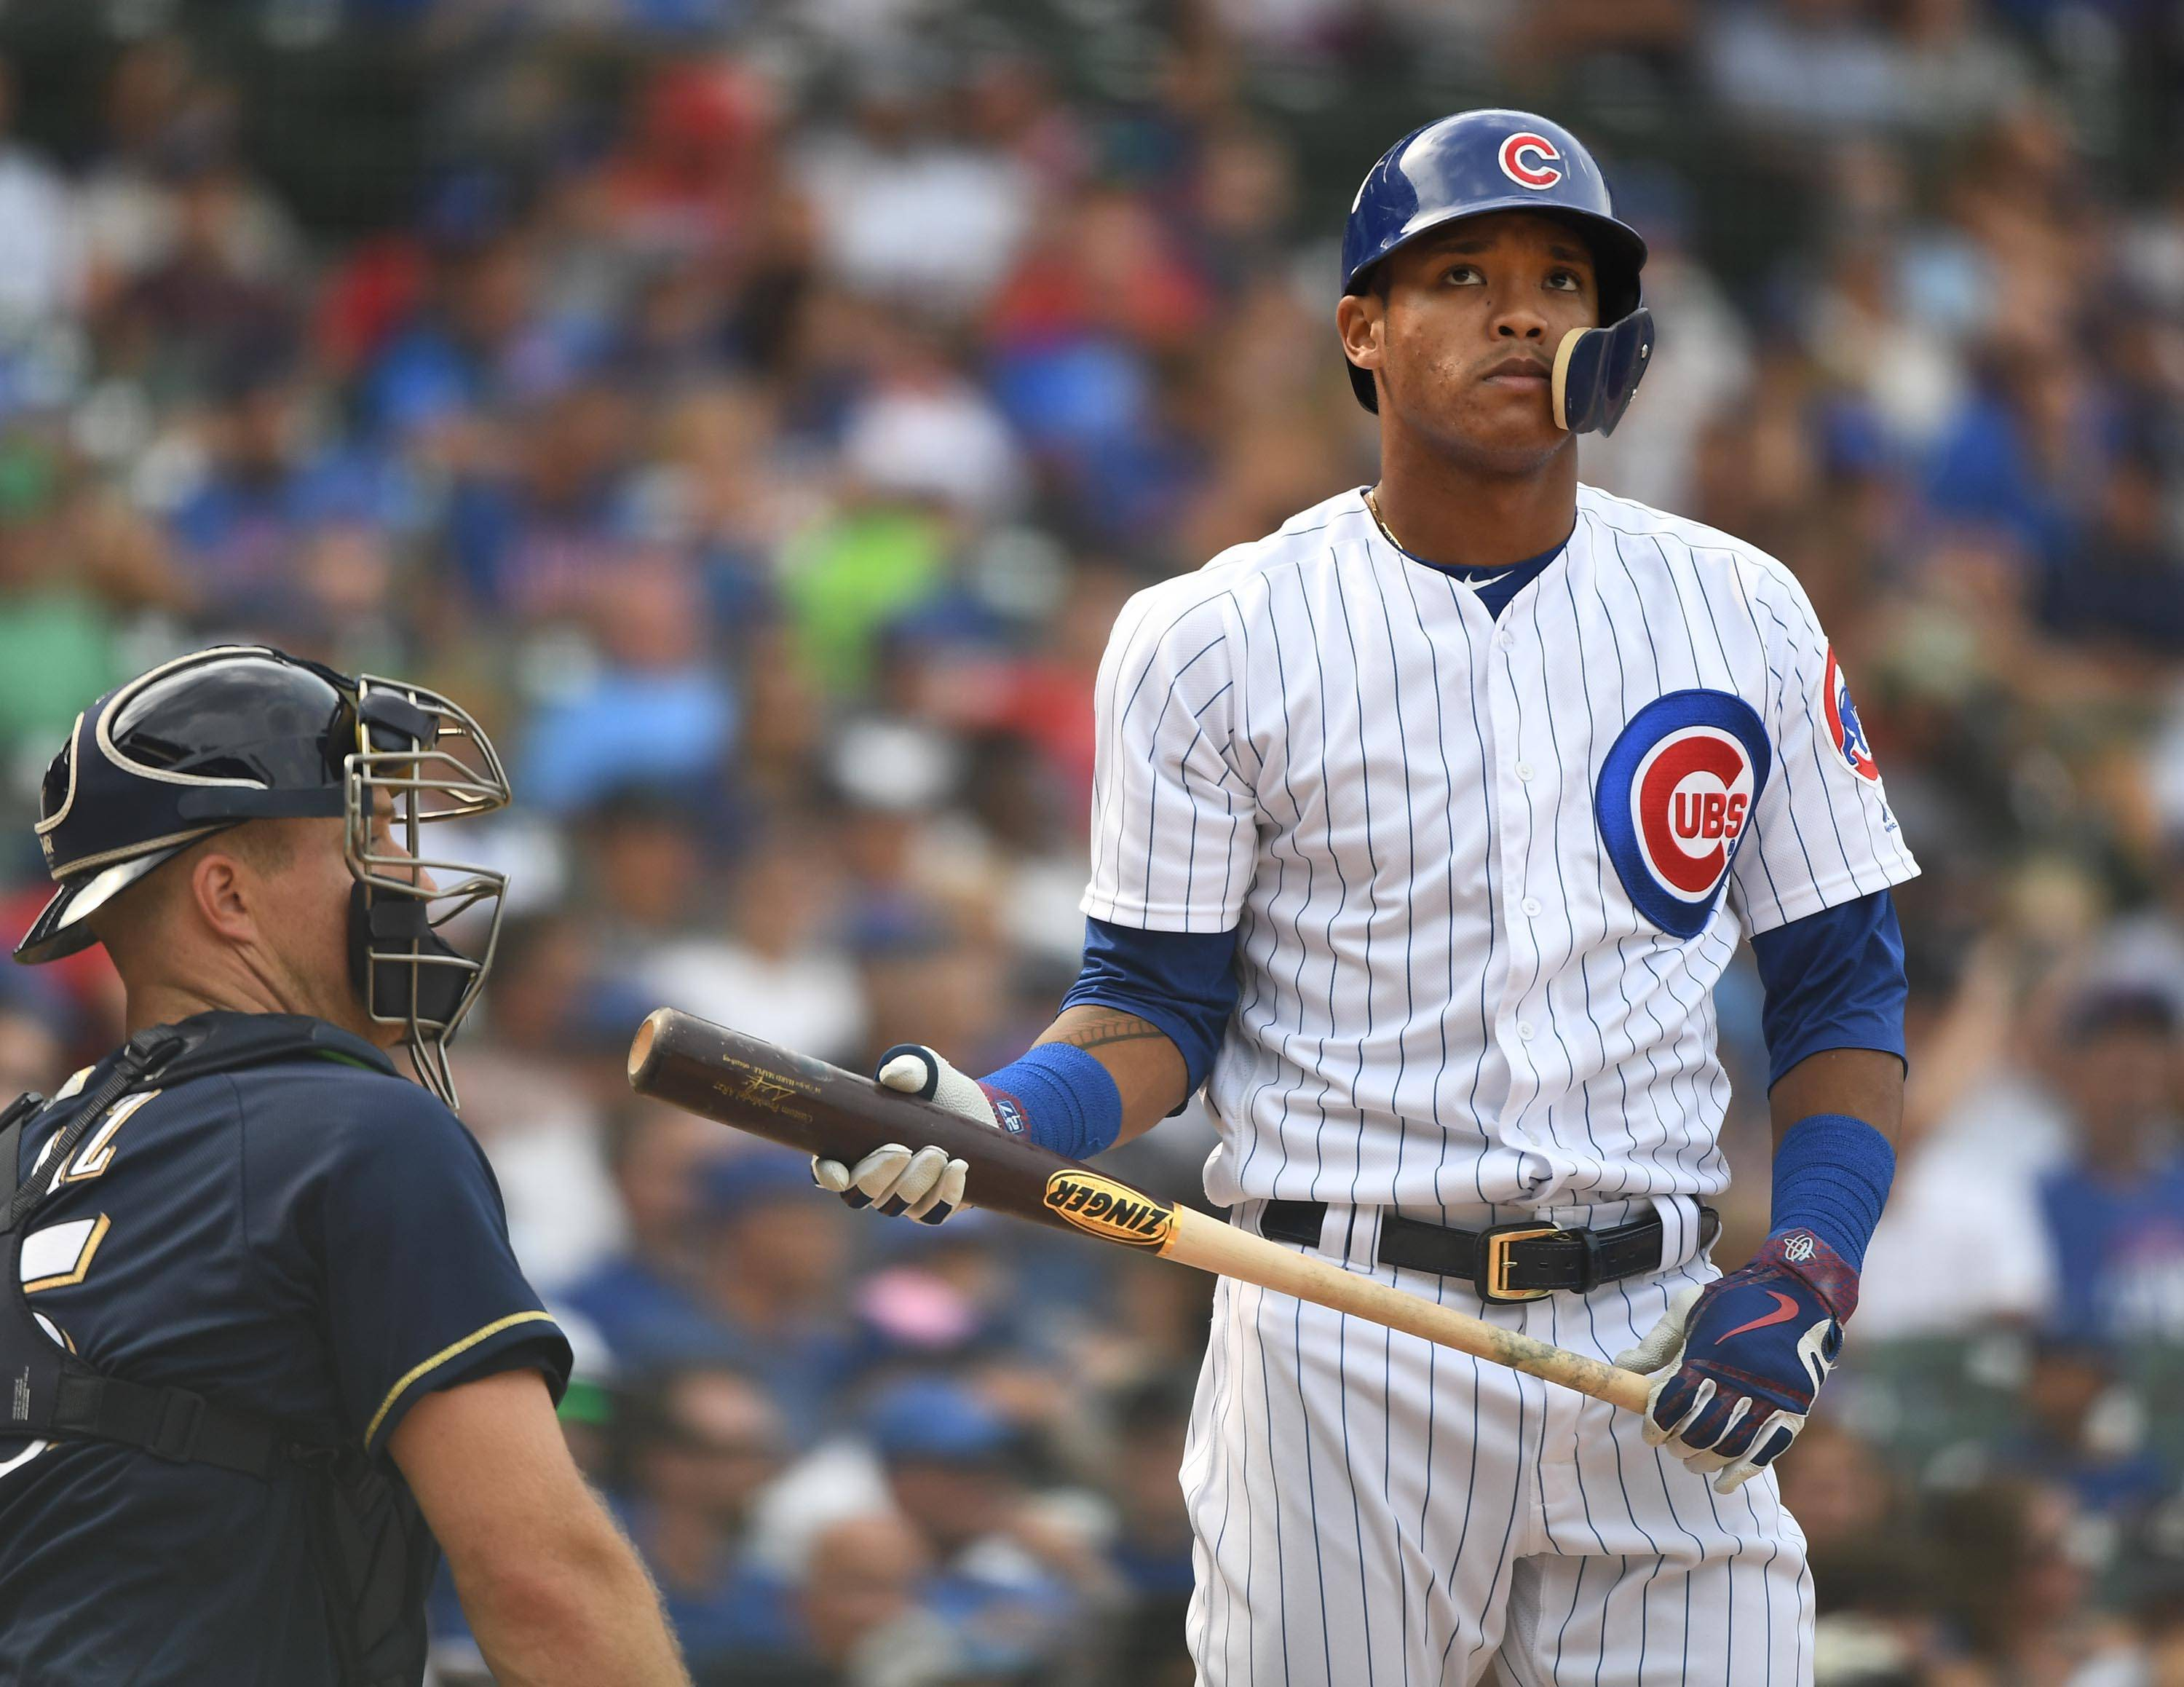 Major League Baseball has placed Cubs shortstop Addison Russell on administrative leave, the team said Friday afternoon. His ex-wife has accused him of emotional, verbal and physical abuse.